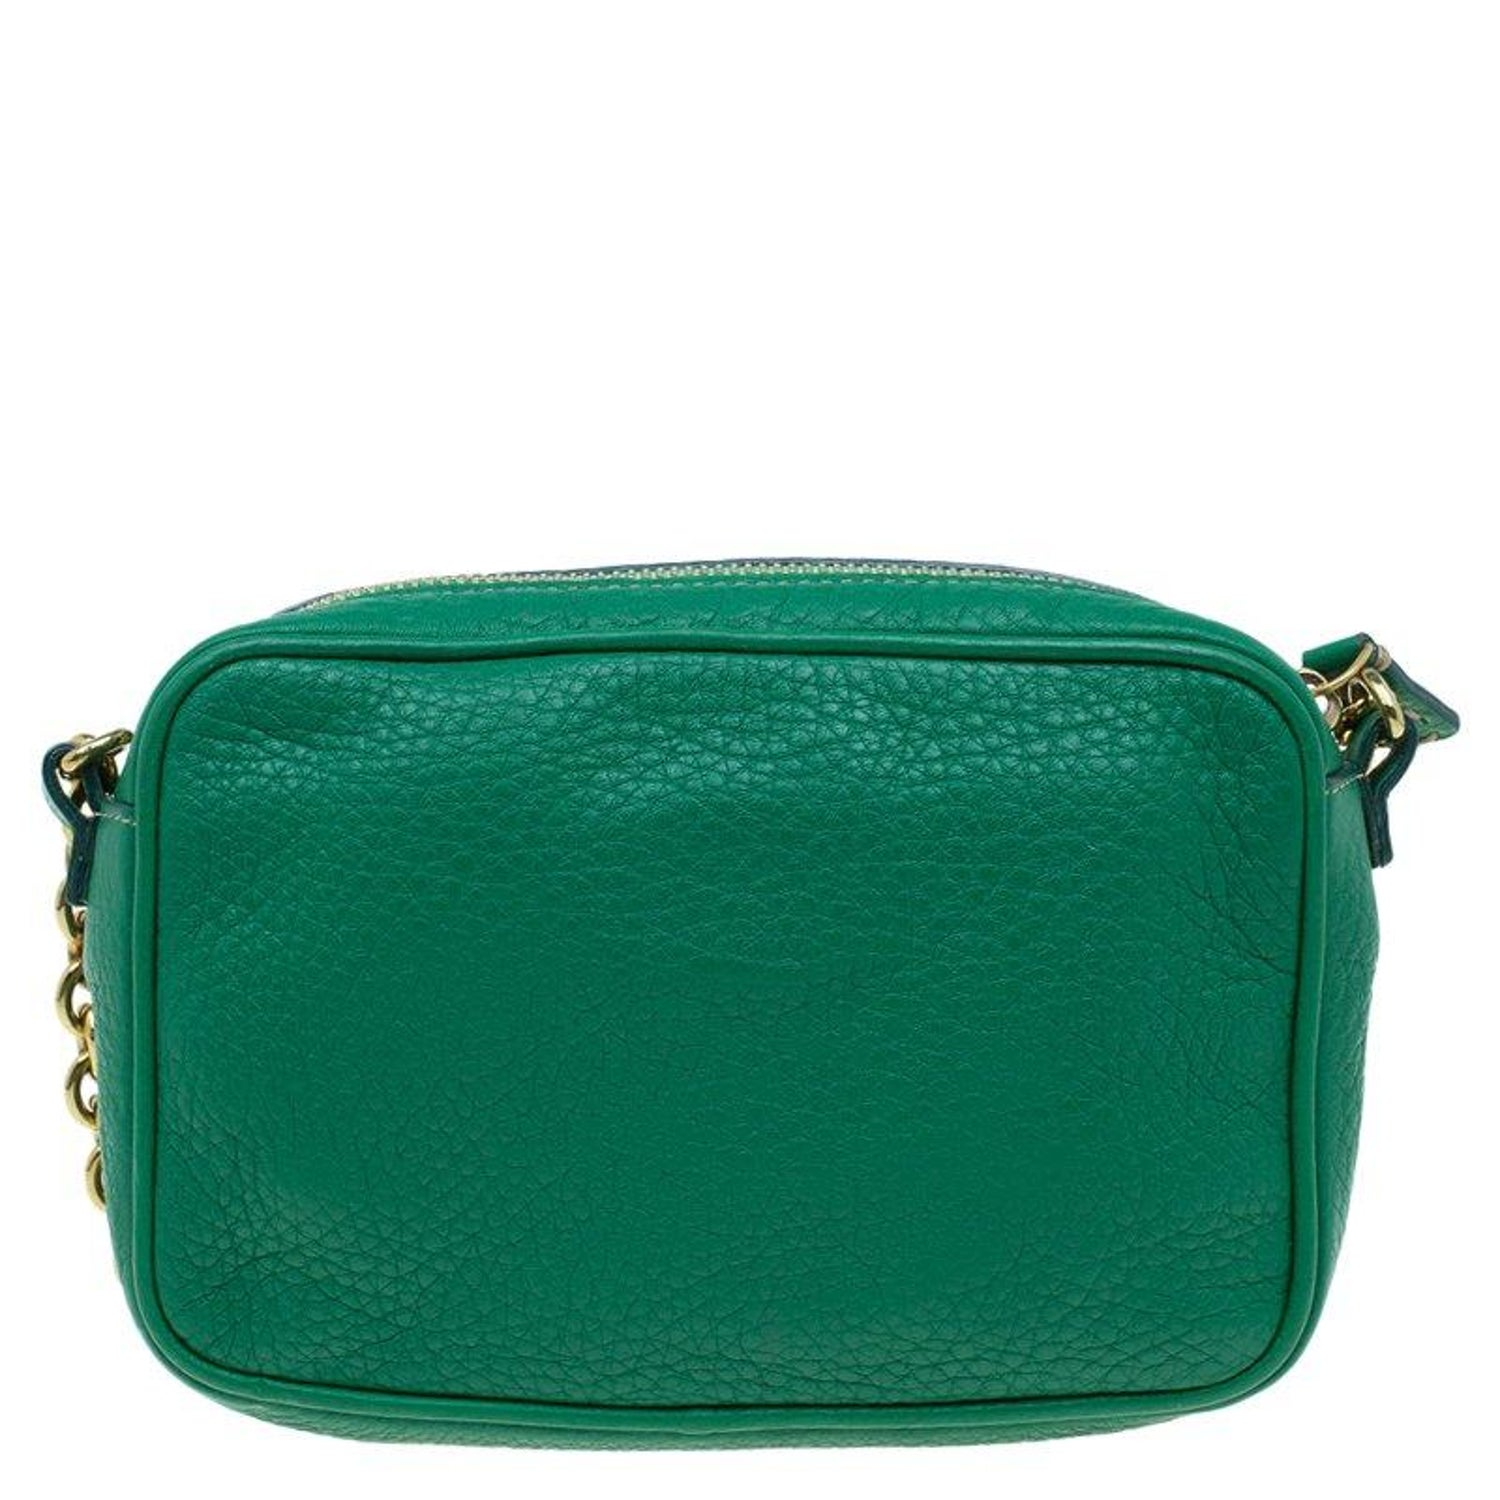 df64be0addd0 Fendi Green Leather Selleria Leather Small Crossbody Bag at 1stdibs